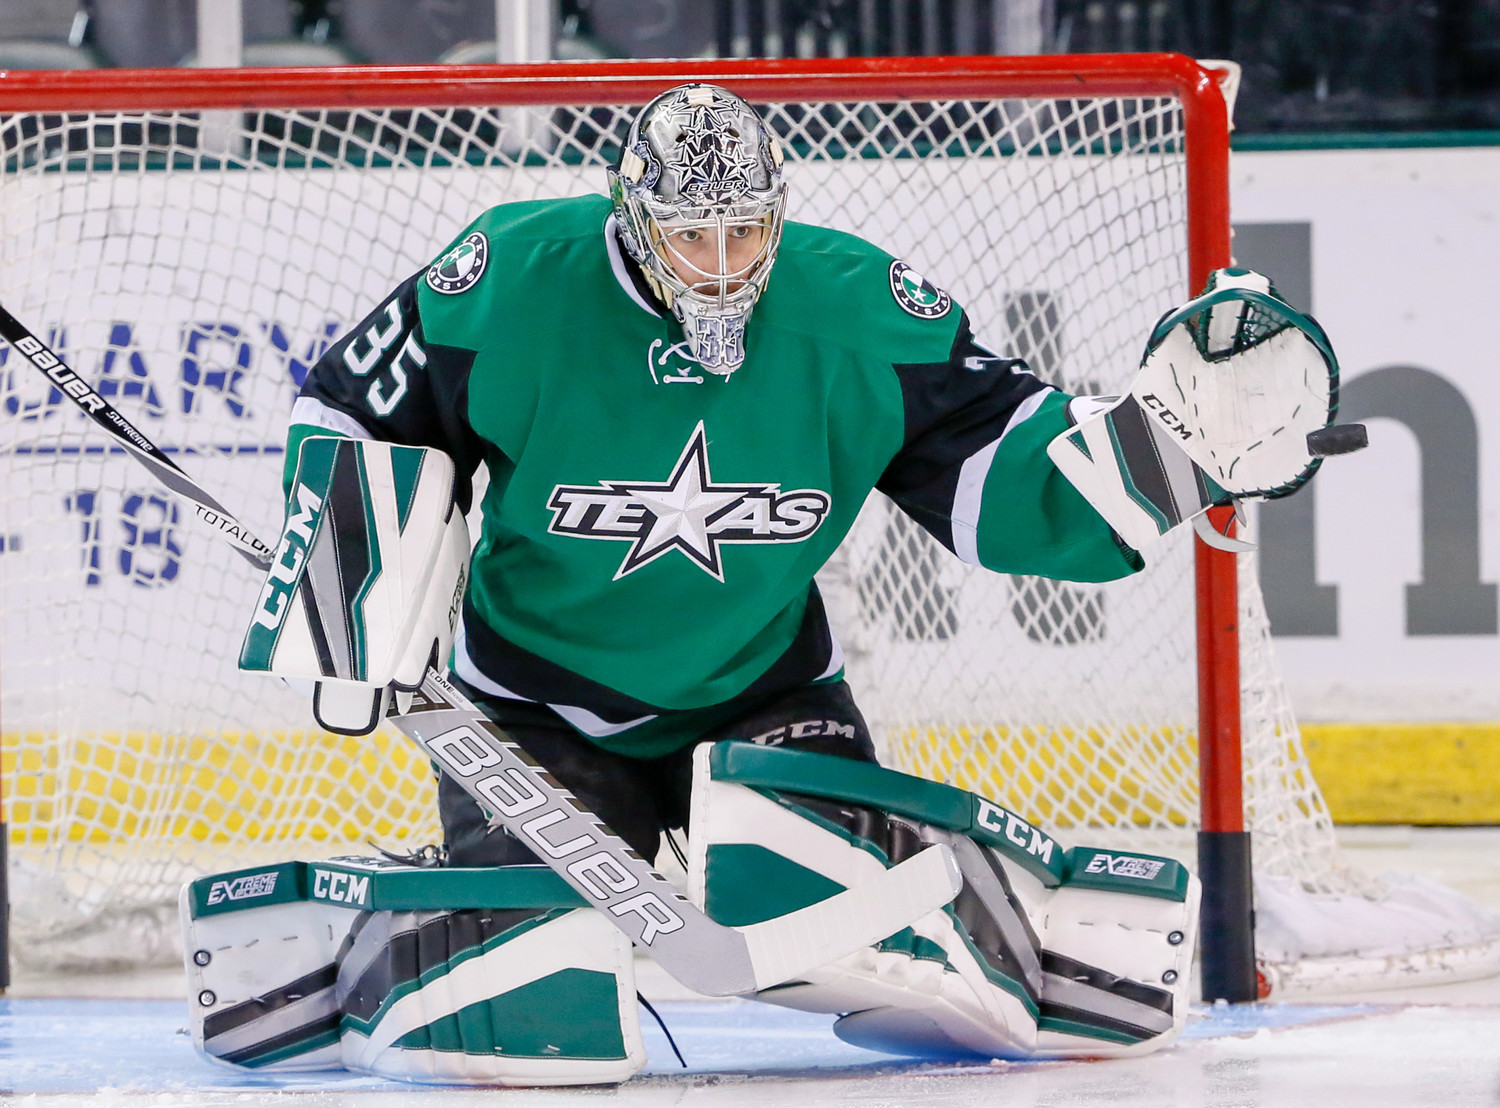 Mike McKenna and the Texas Stars begin the season Friday night at home against the Chicago Wolves.